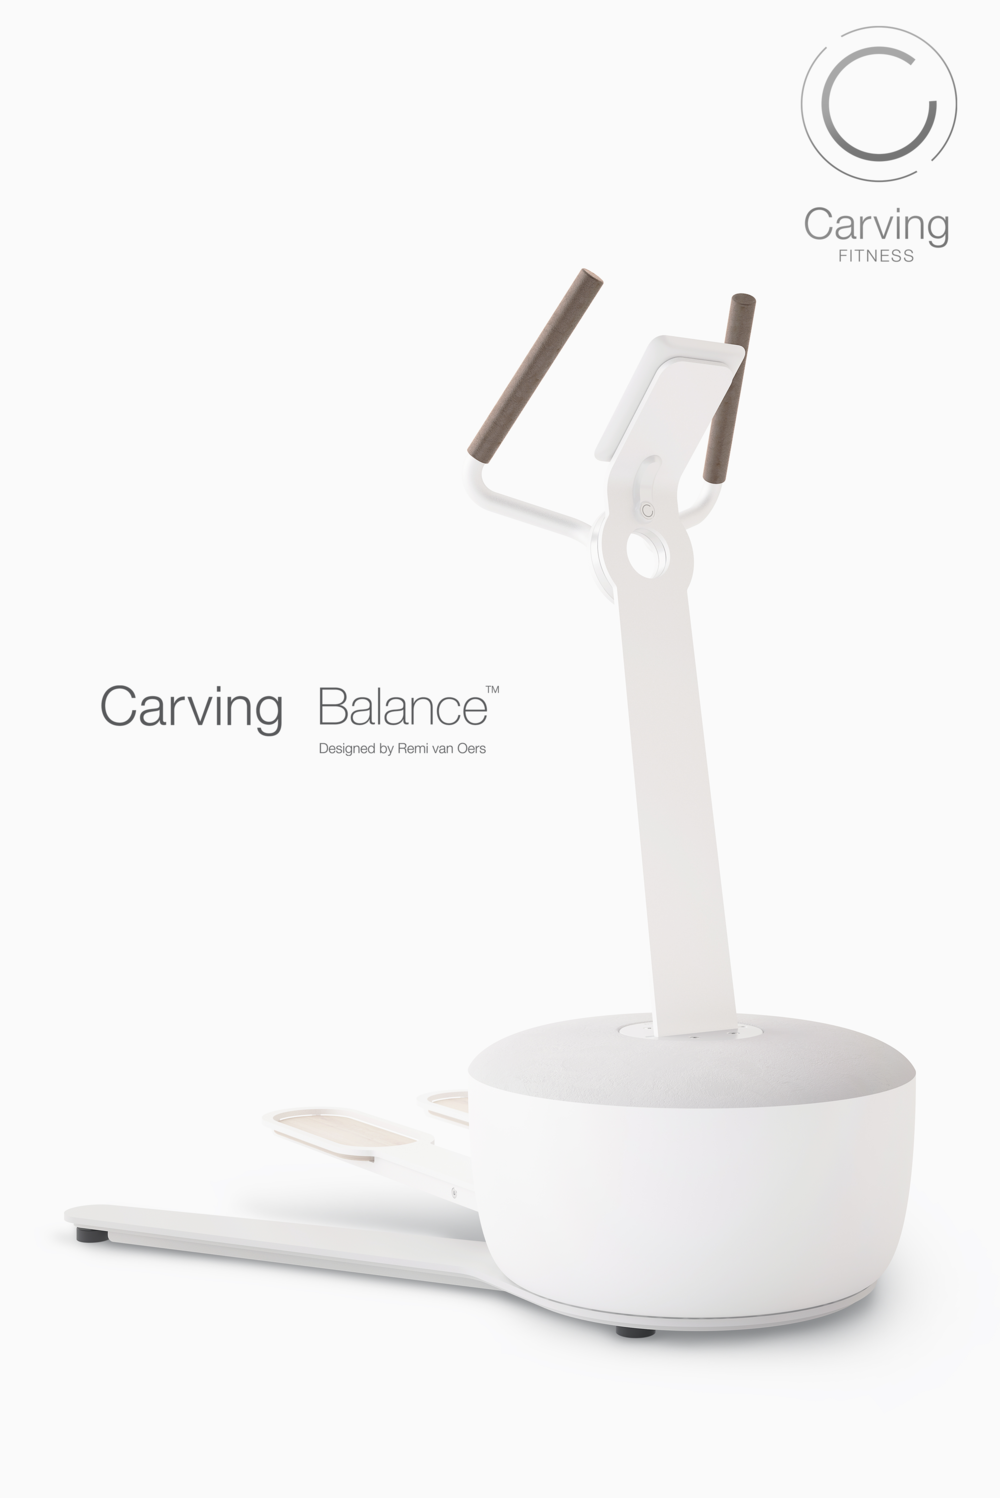 The Carving Balance designed by REMI VAN OERS for Carving Fitness.